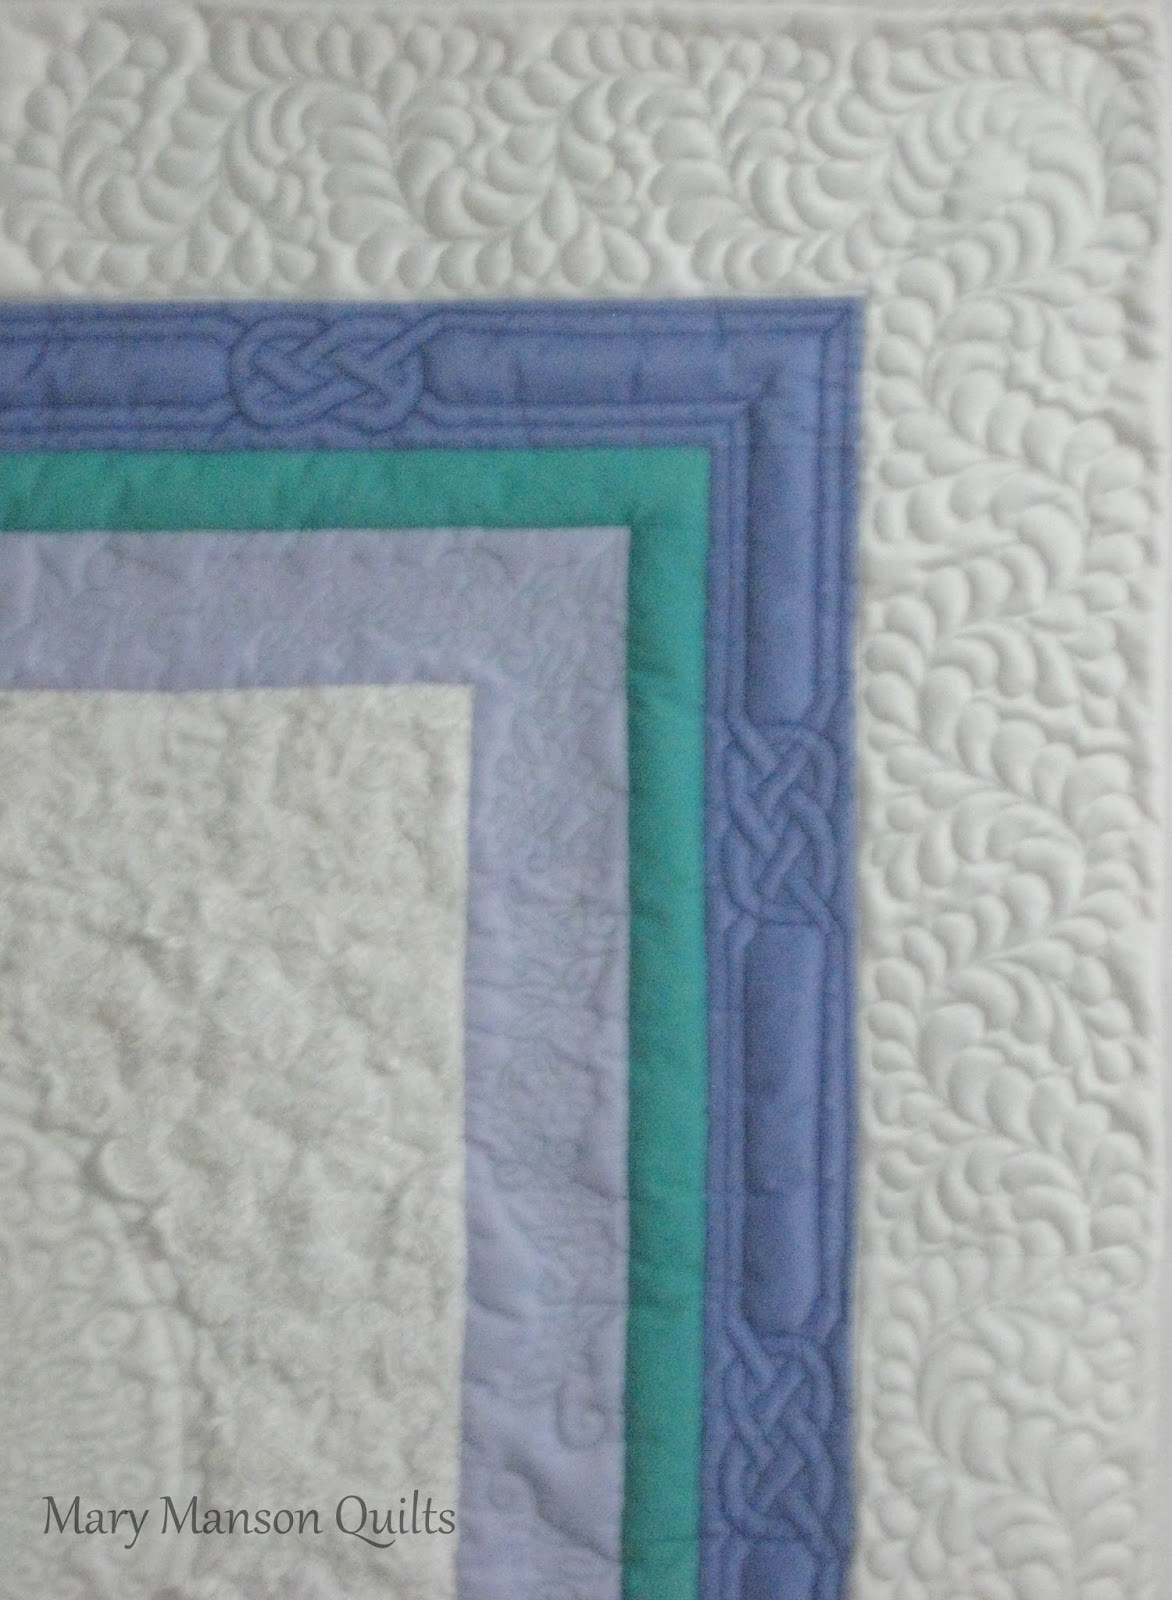 Mary Manson Quilts: Wedding Dress Quilt for Andrea